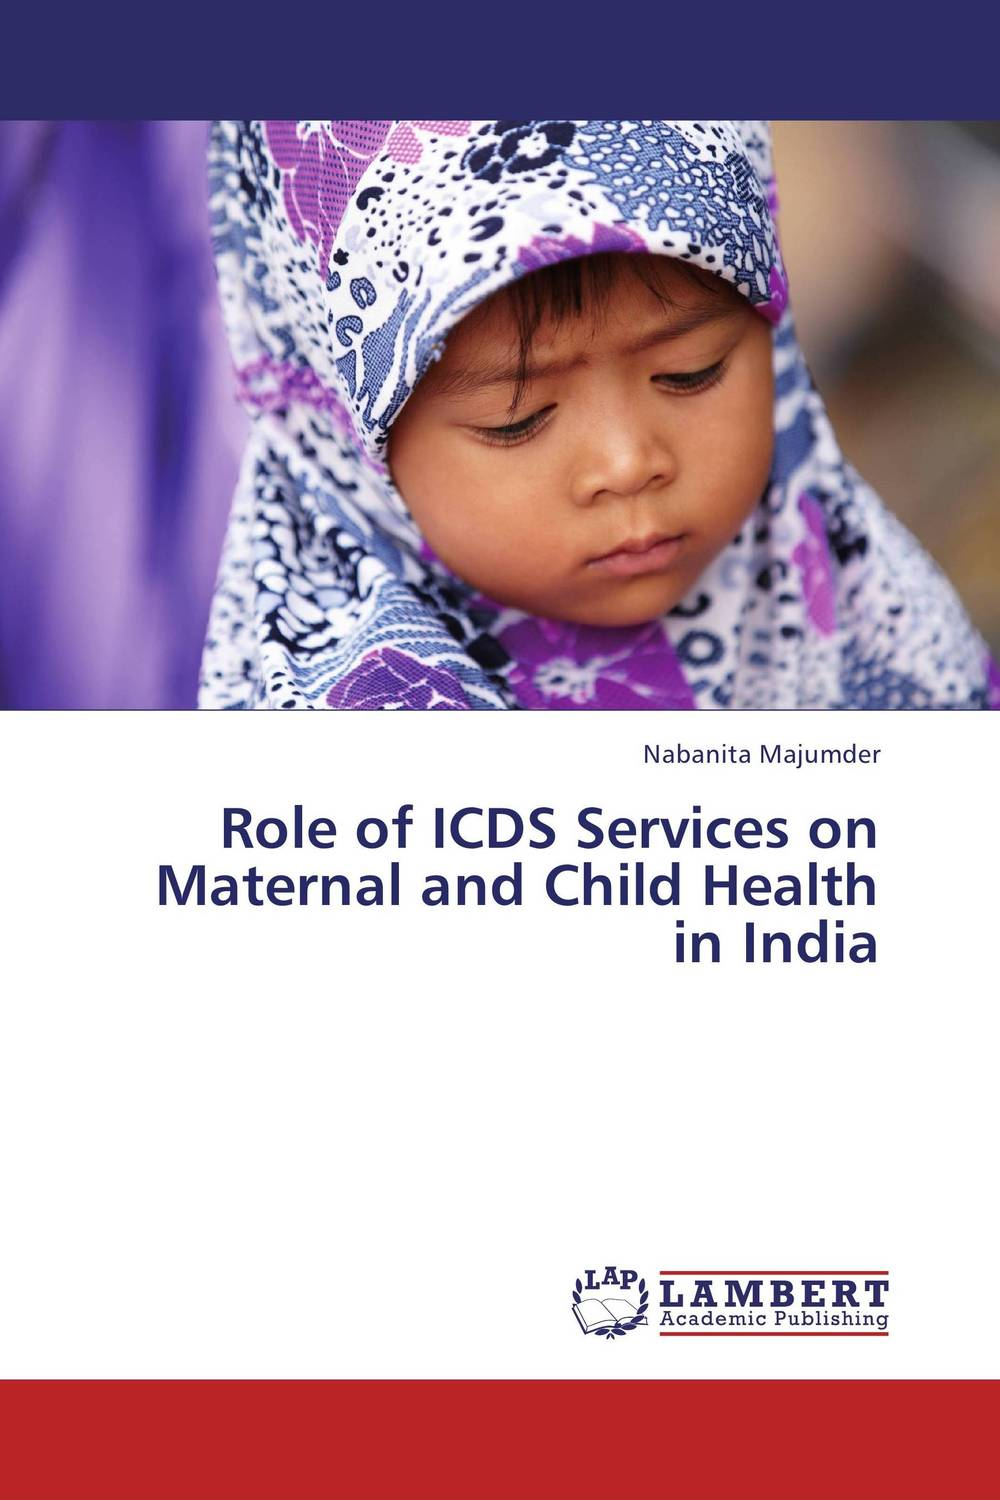 Role of ICDS Services on Maternal and Child Health in India